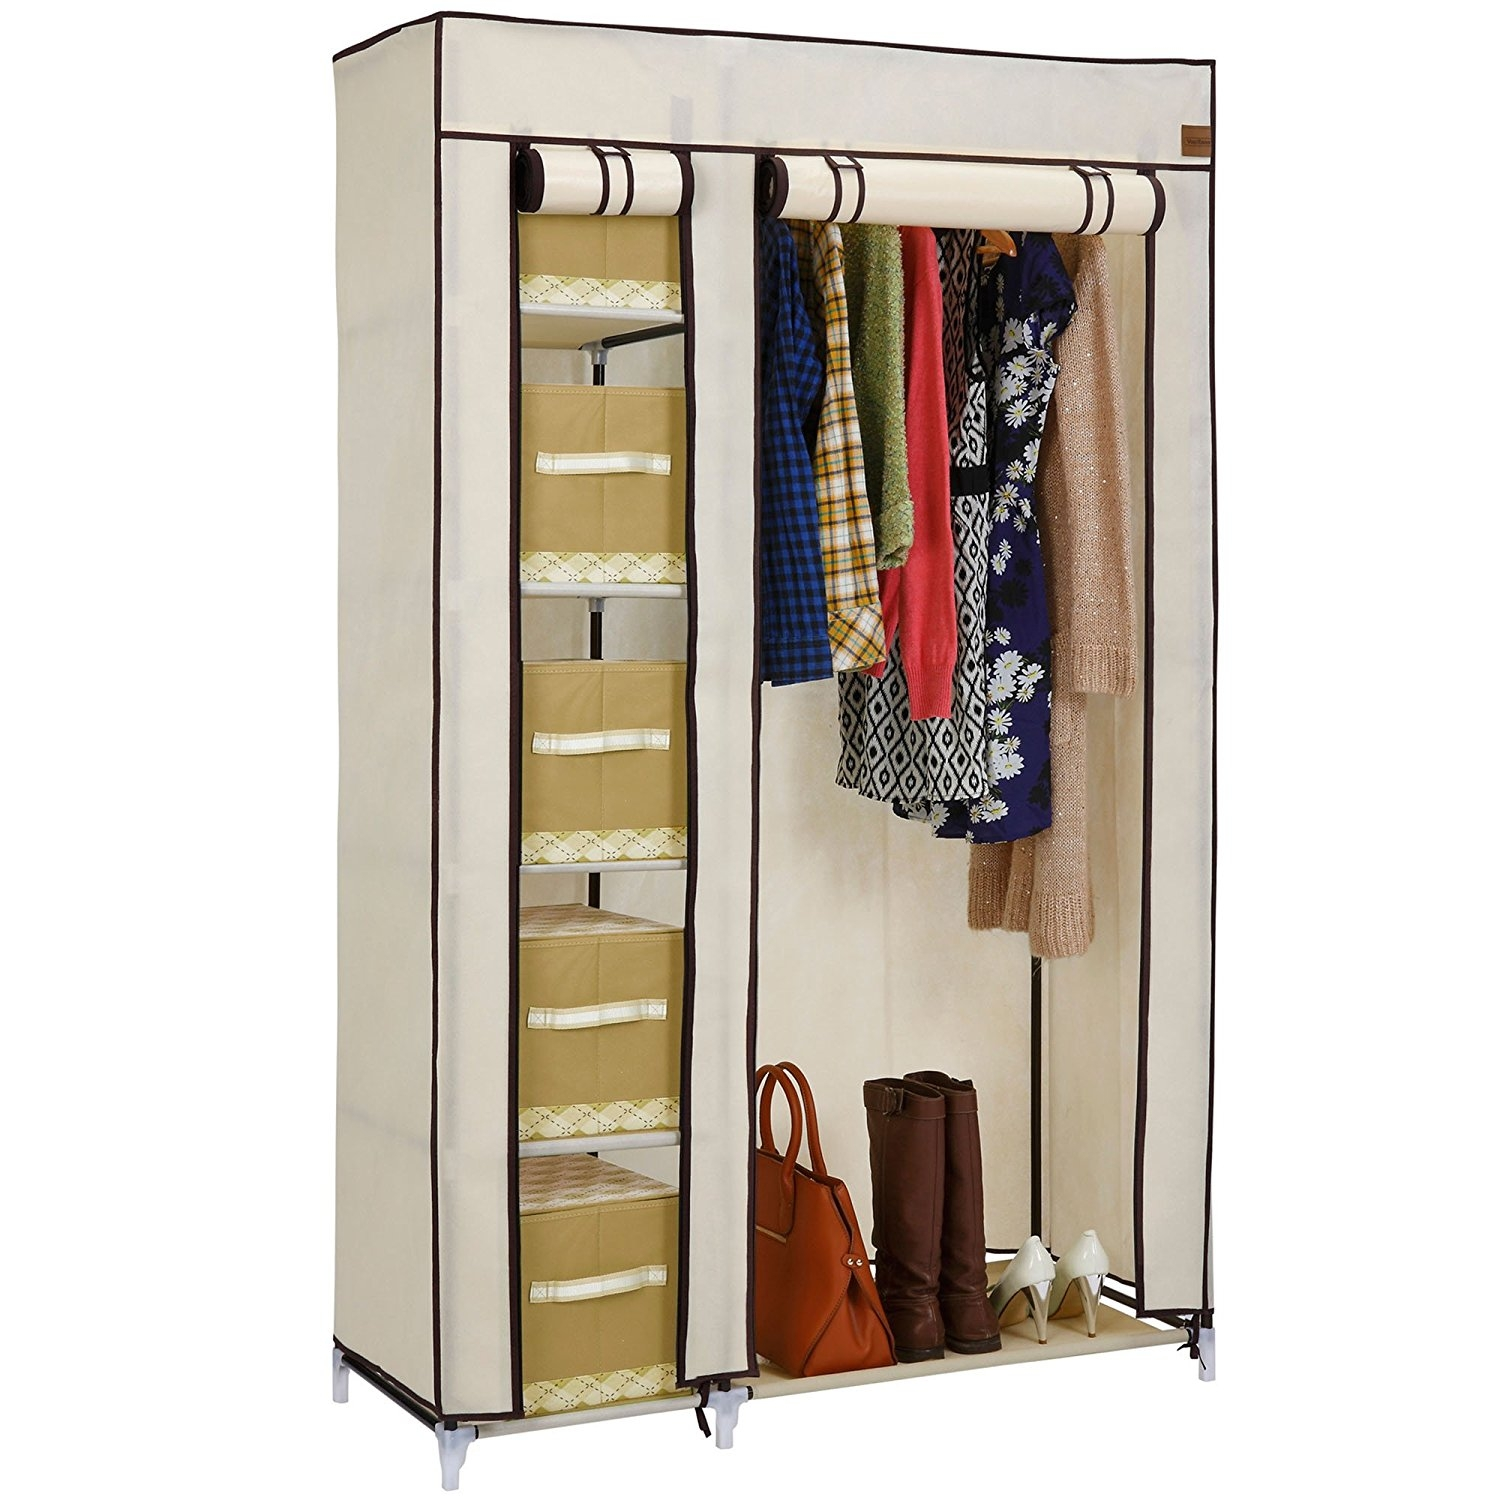 Bedroom Wardrobes Bedroom Furniture Shop Amazon Uk In Double Rail Wardrobe (Image 1 of 15)